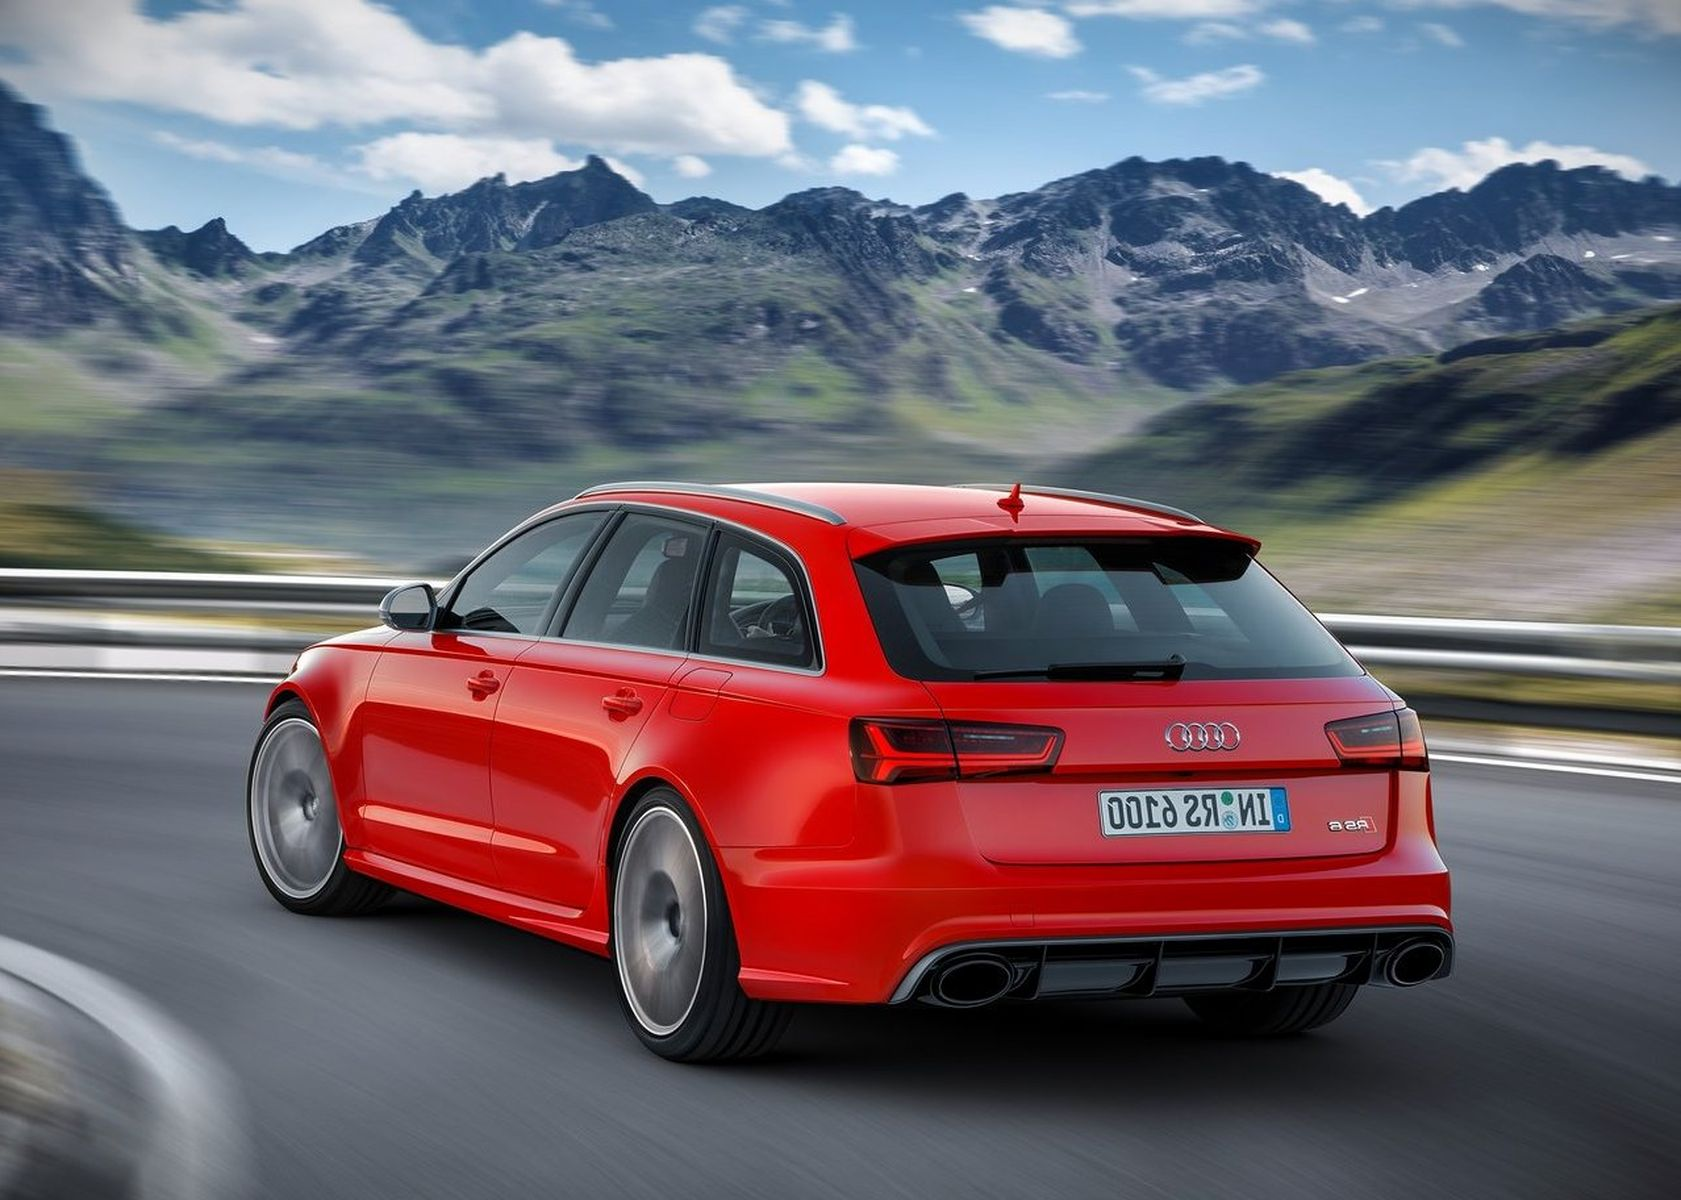 2018 audi rs6 avant usa release date pictures price new suv price. Black Bedroom Furniture Sets. Home Design Ideas